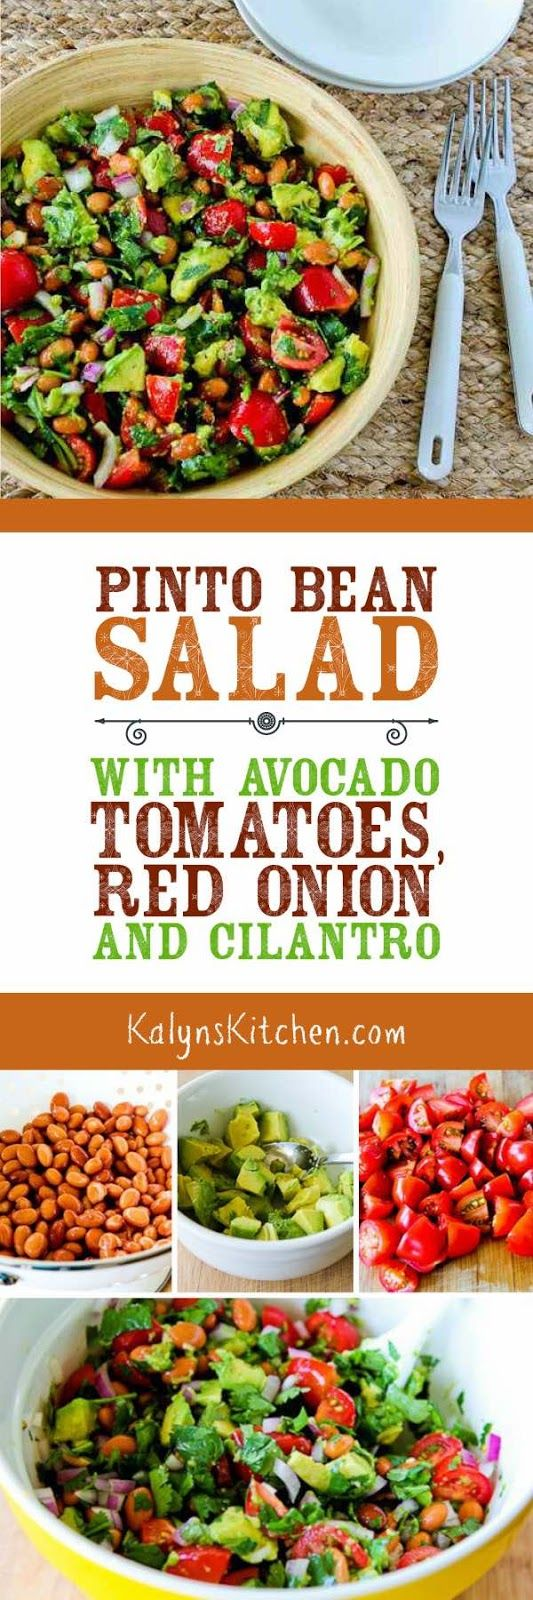 Pinto beans, Bean salads and Salad with avocado on Pinterest